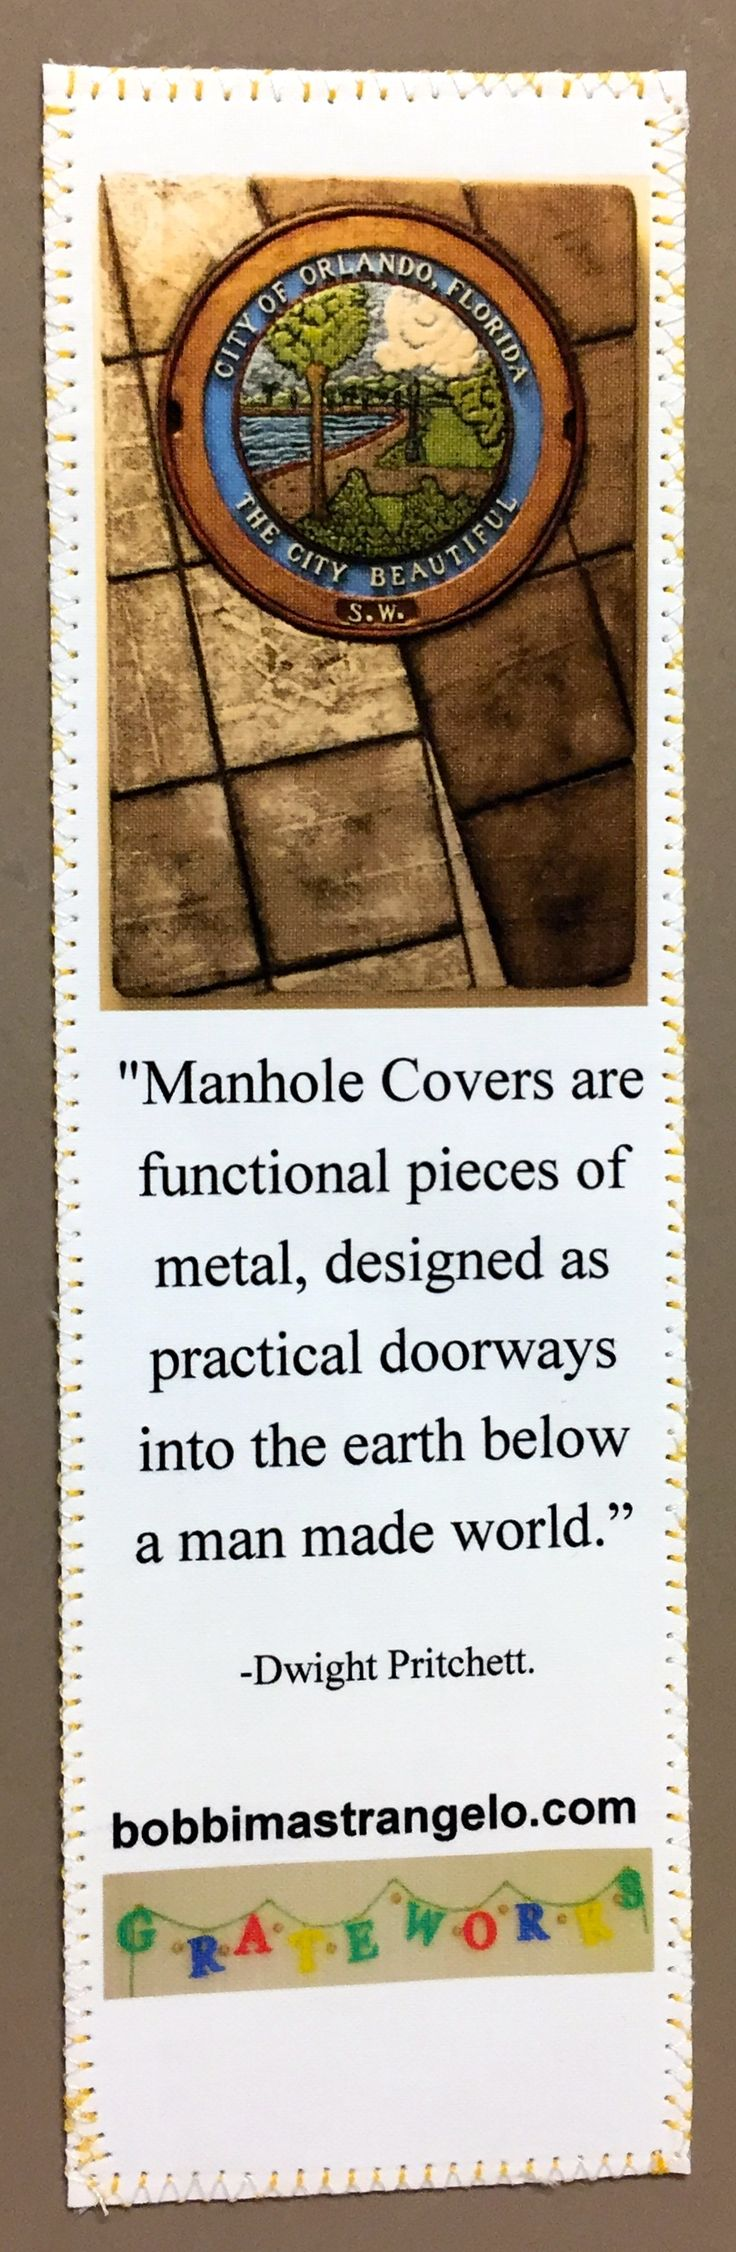 """Dwight Pritchett Quote printed on a book mark. Based on """"The City Beautiful"""" relief by Bobbi Mastrangelo and a Manhole Cover quote by Dwight Pritchett who was featured on Michelle Ward's 2016 October Manhole Madness. Solivita Quilter, Gaby Backert designed and sewed this Book Mark especially for Bobbi Mastrangelo, The Manhole Artist."""